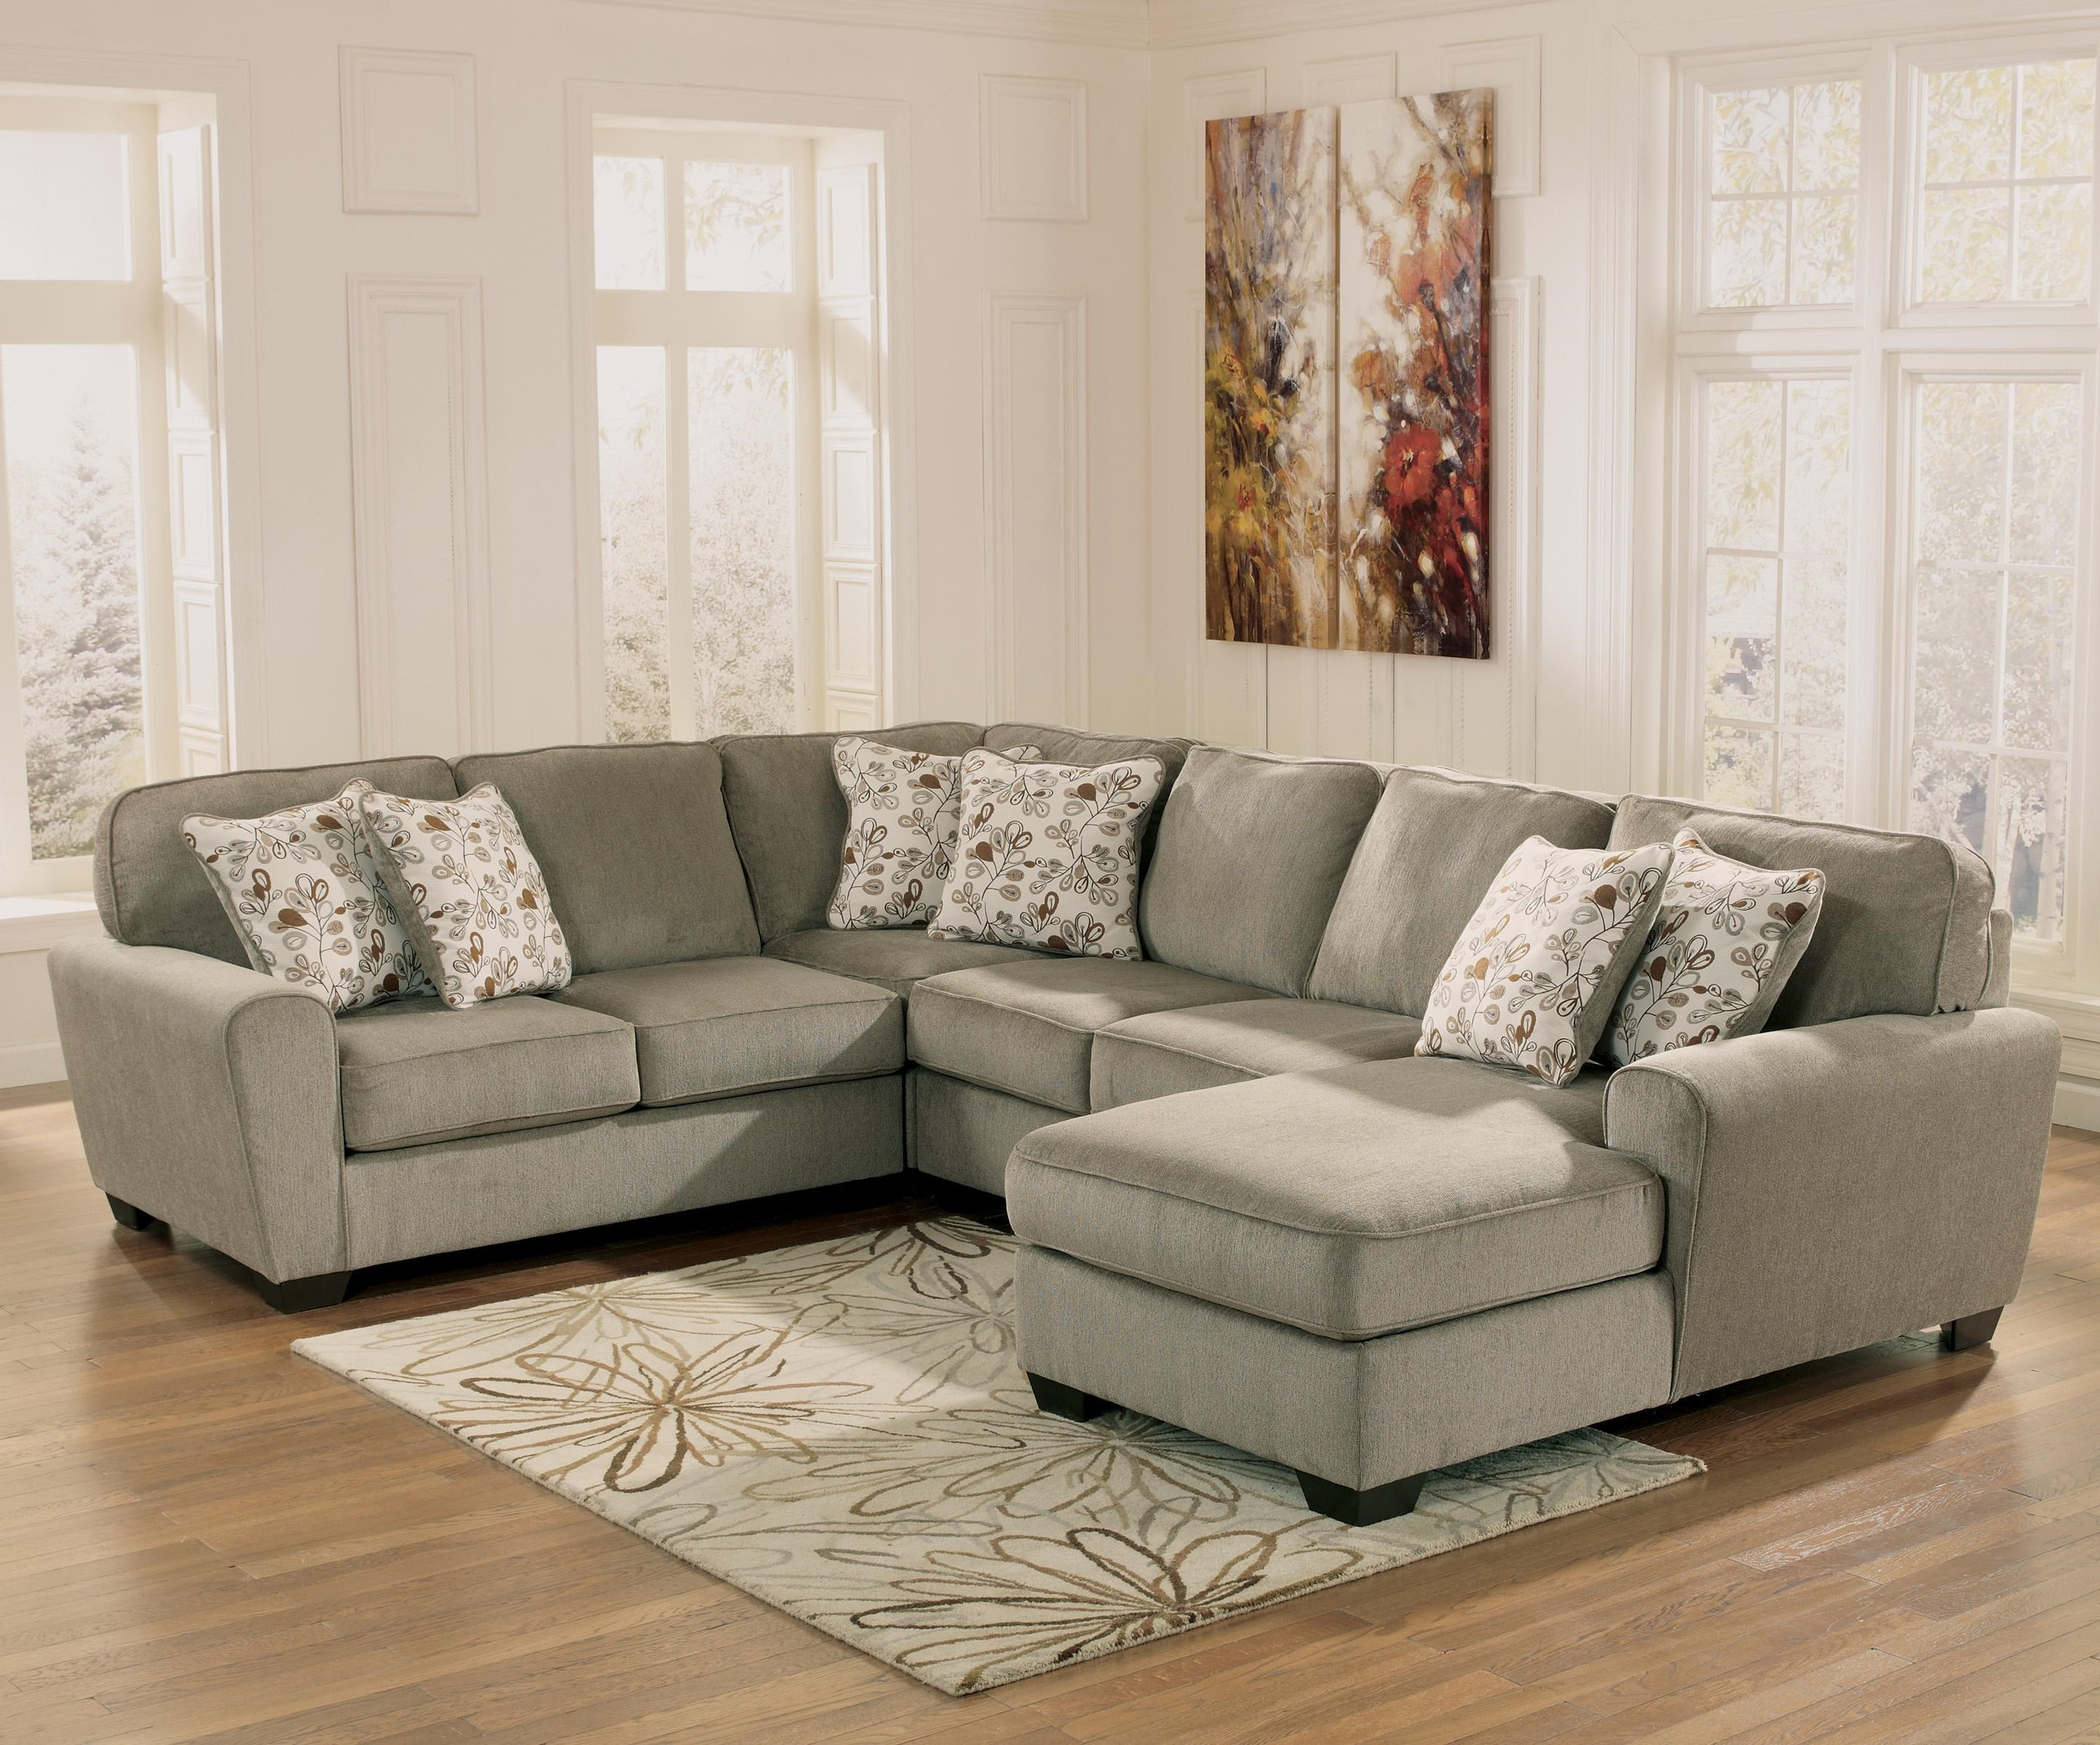 Ashley Furniture Patola Park   Patina4 Piece Small Sectional With Right  Chaise ...